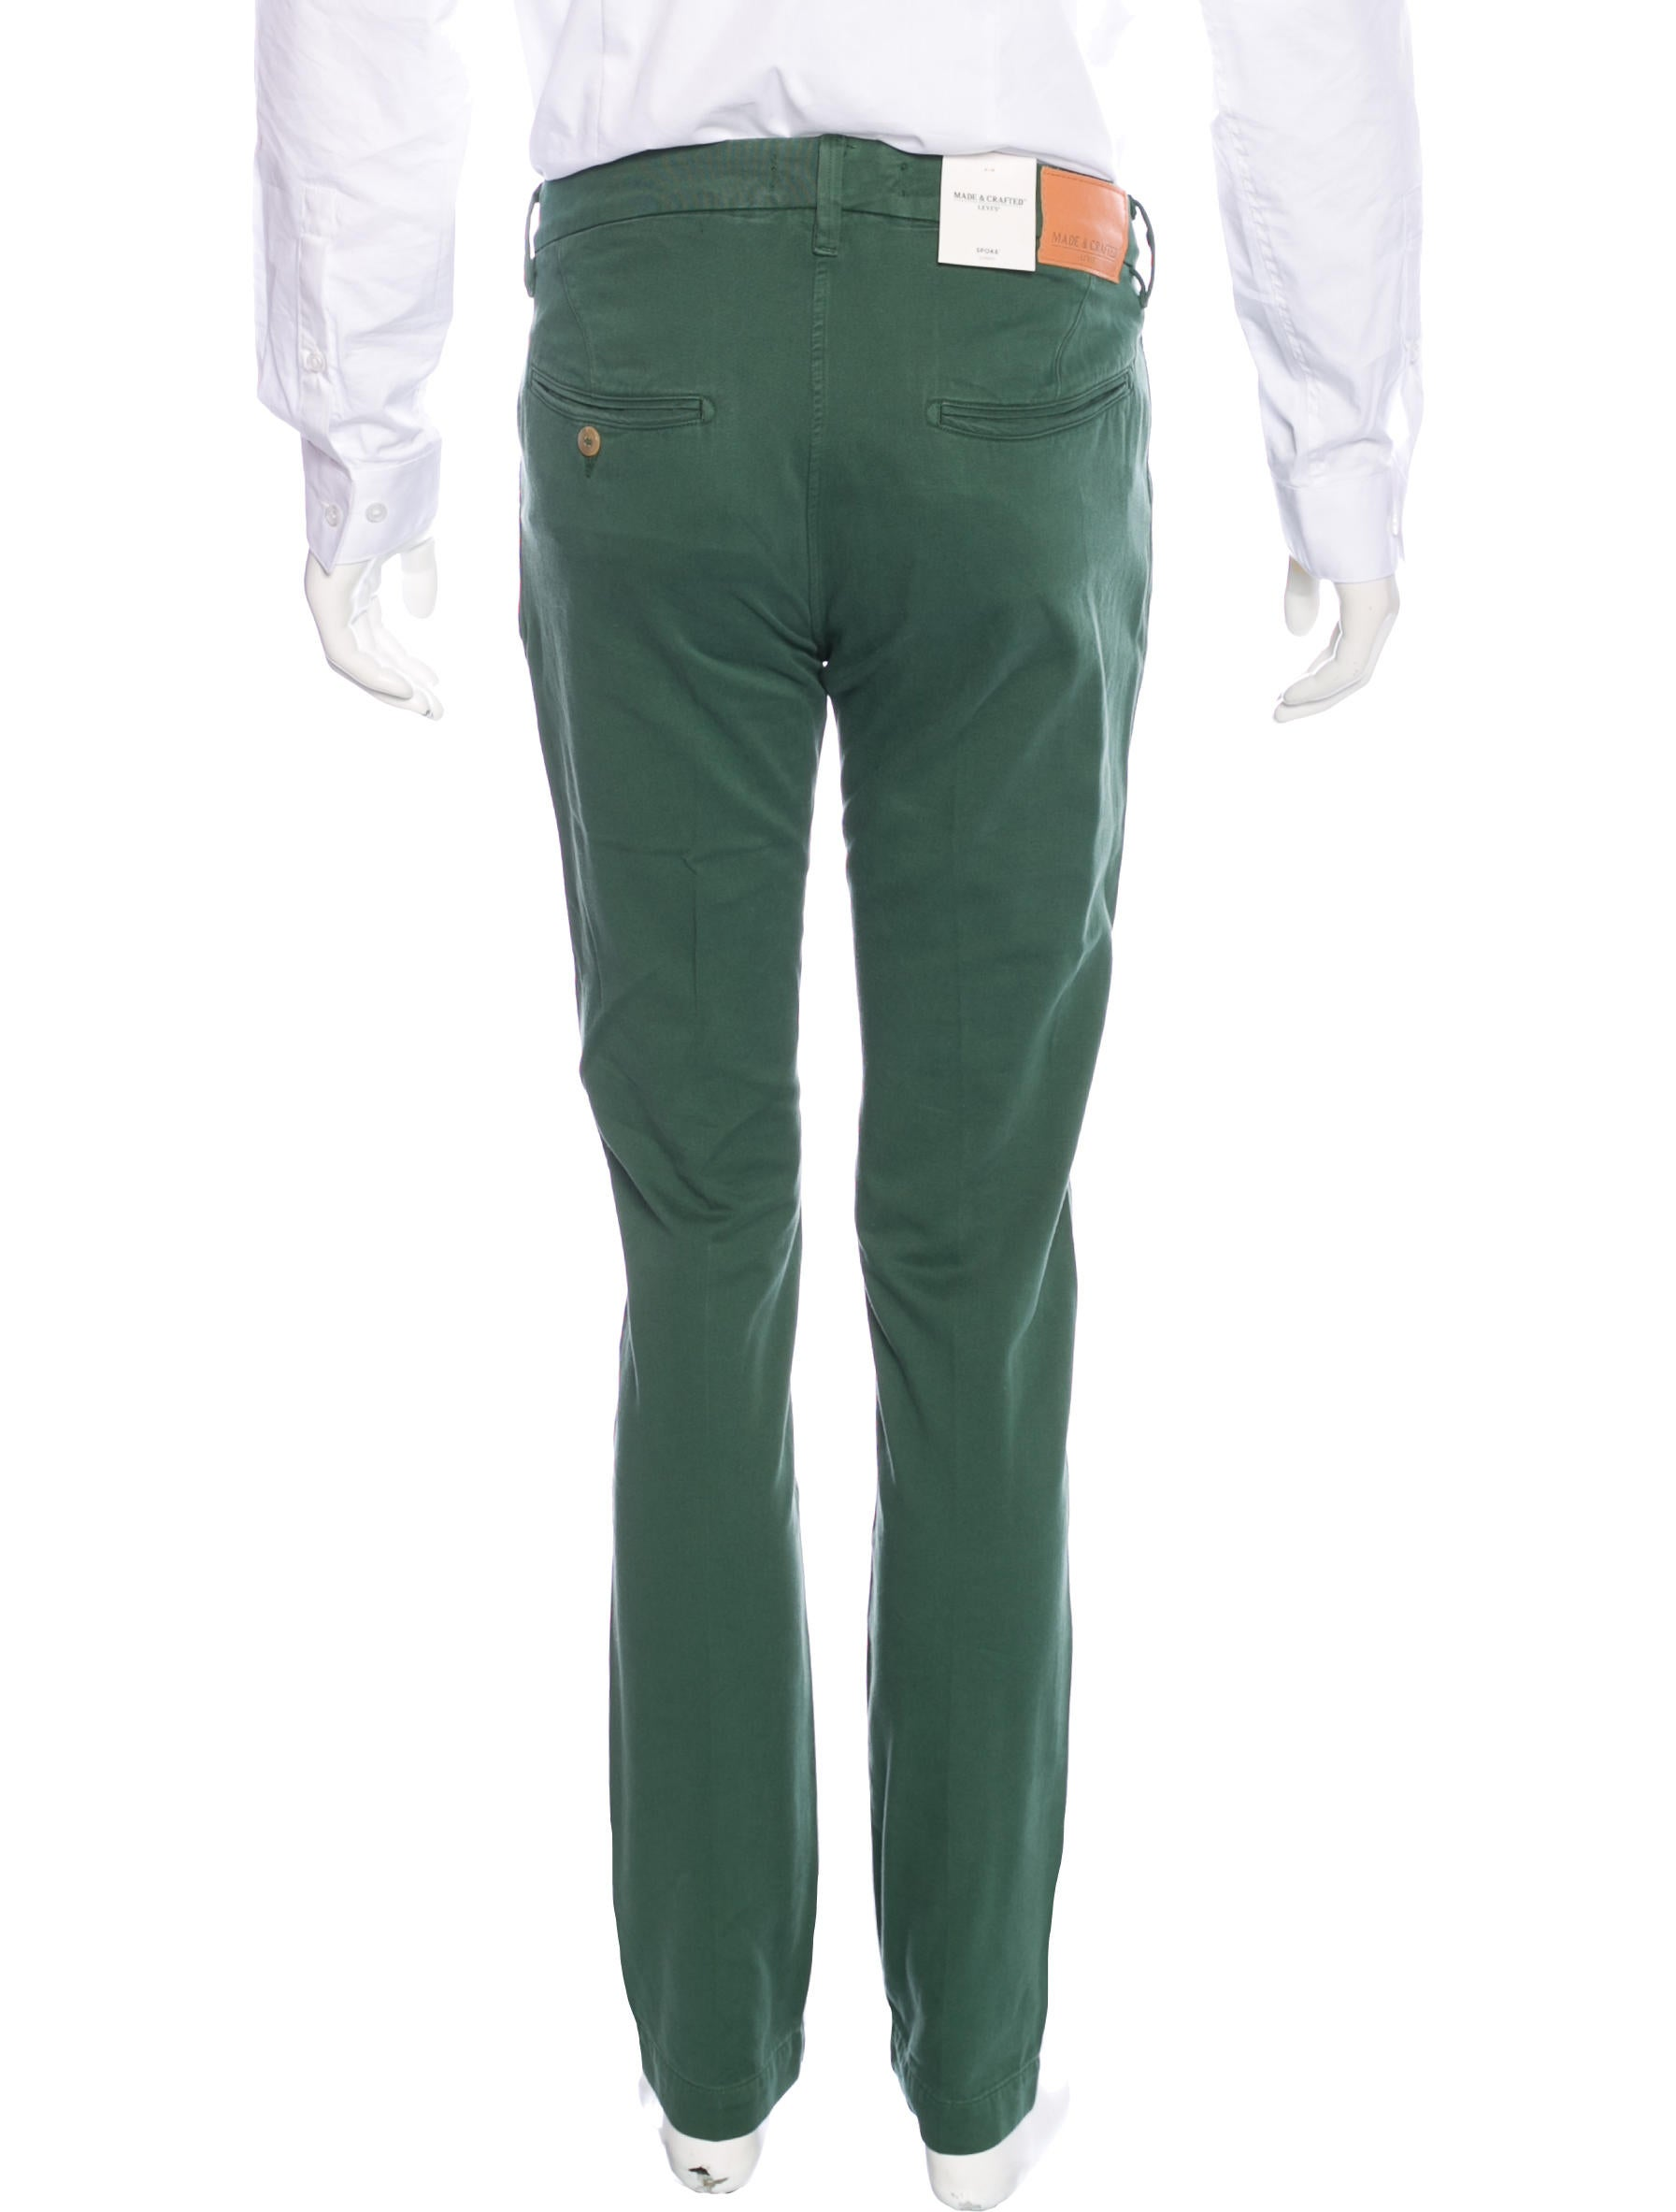 Levi 39 s made crafted spoke chino pants w tags clothing for Levis made and crafted spoke chino